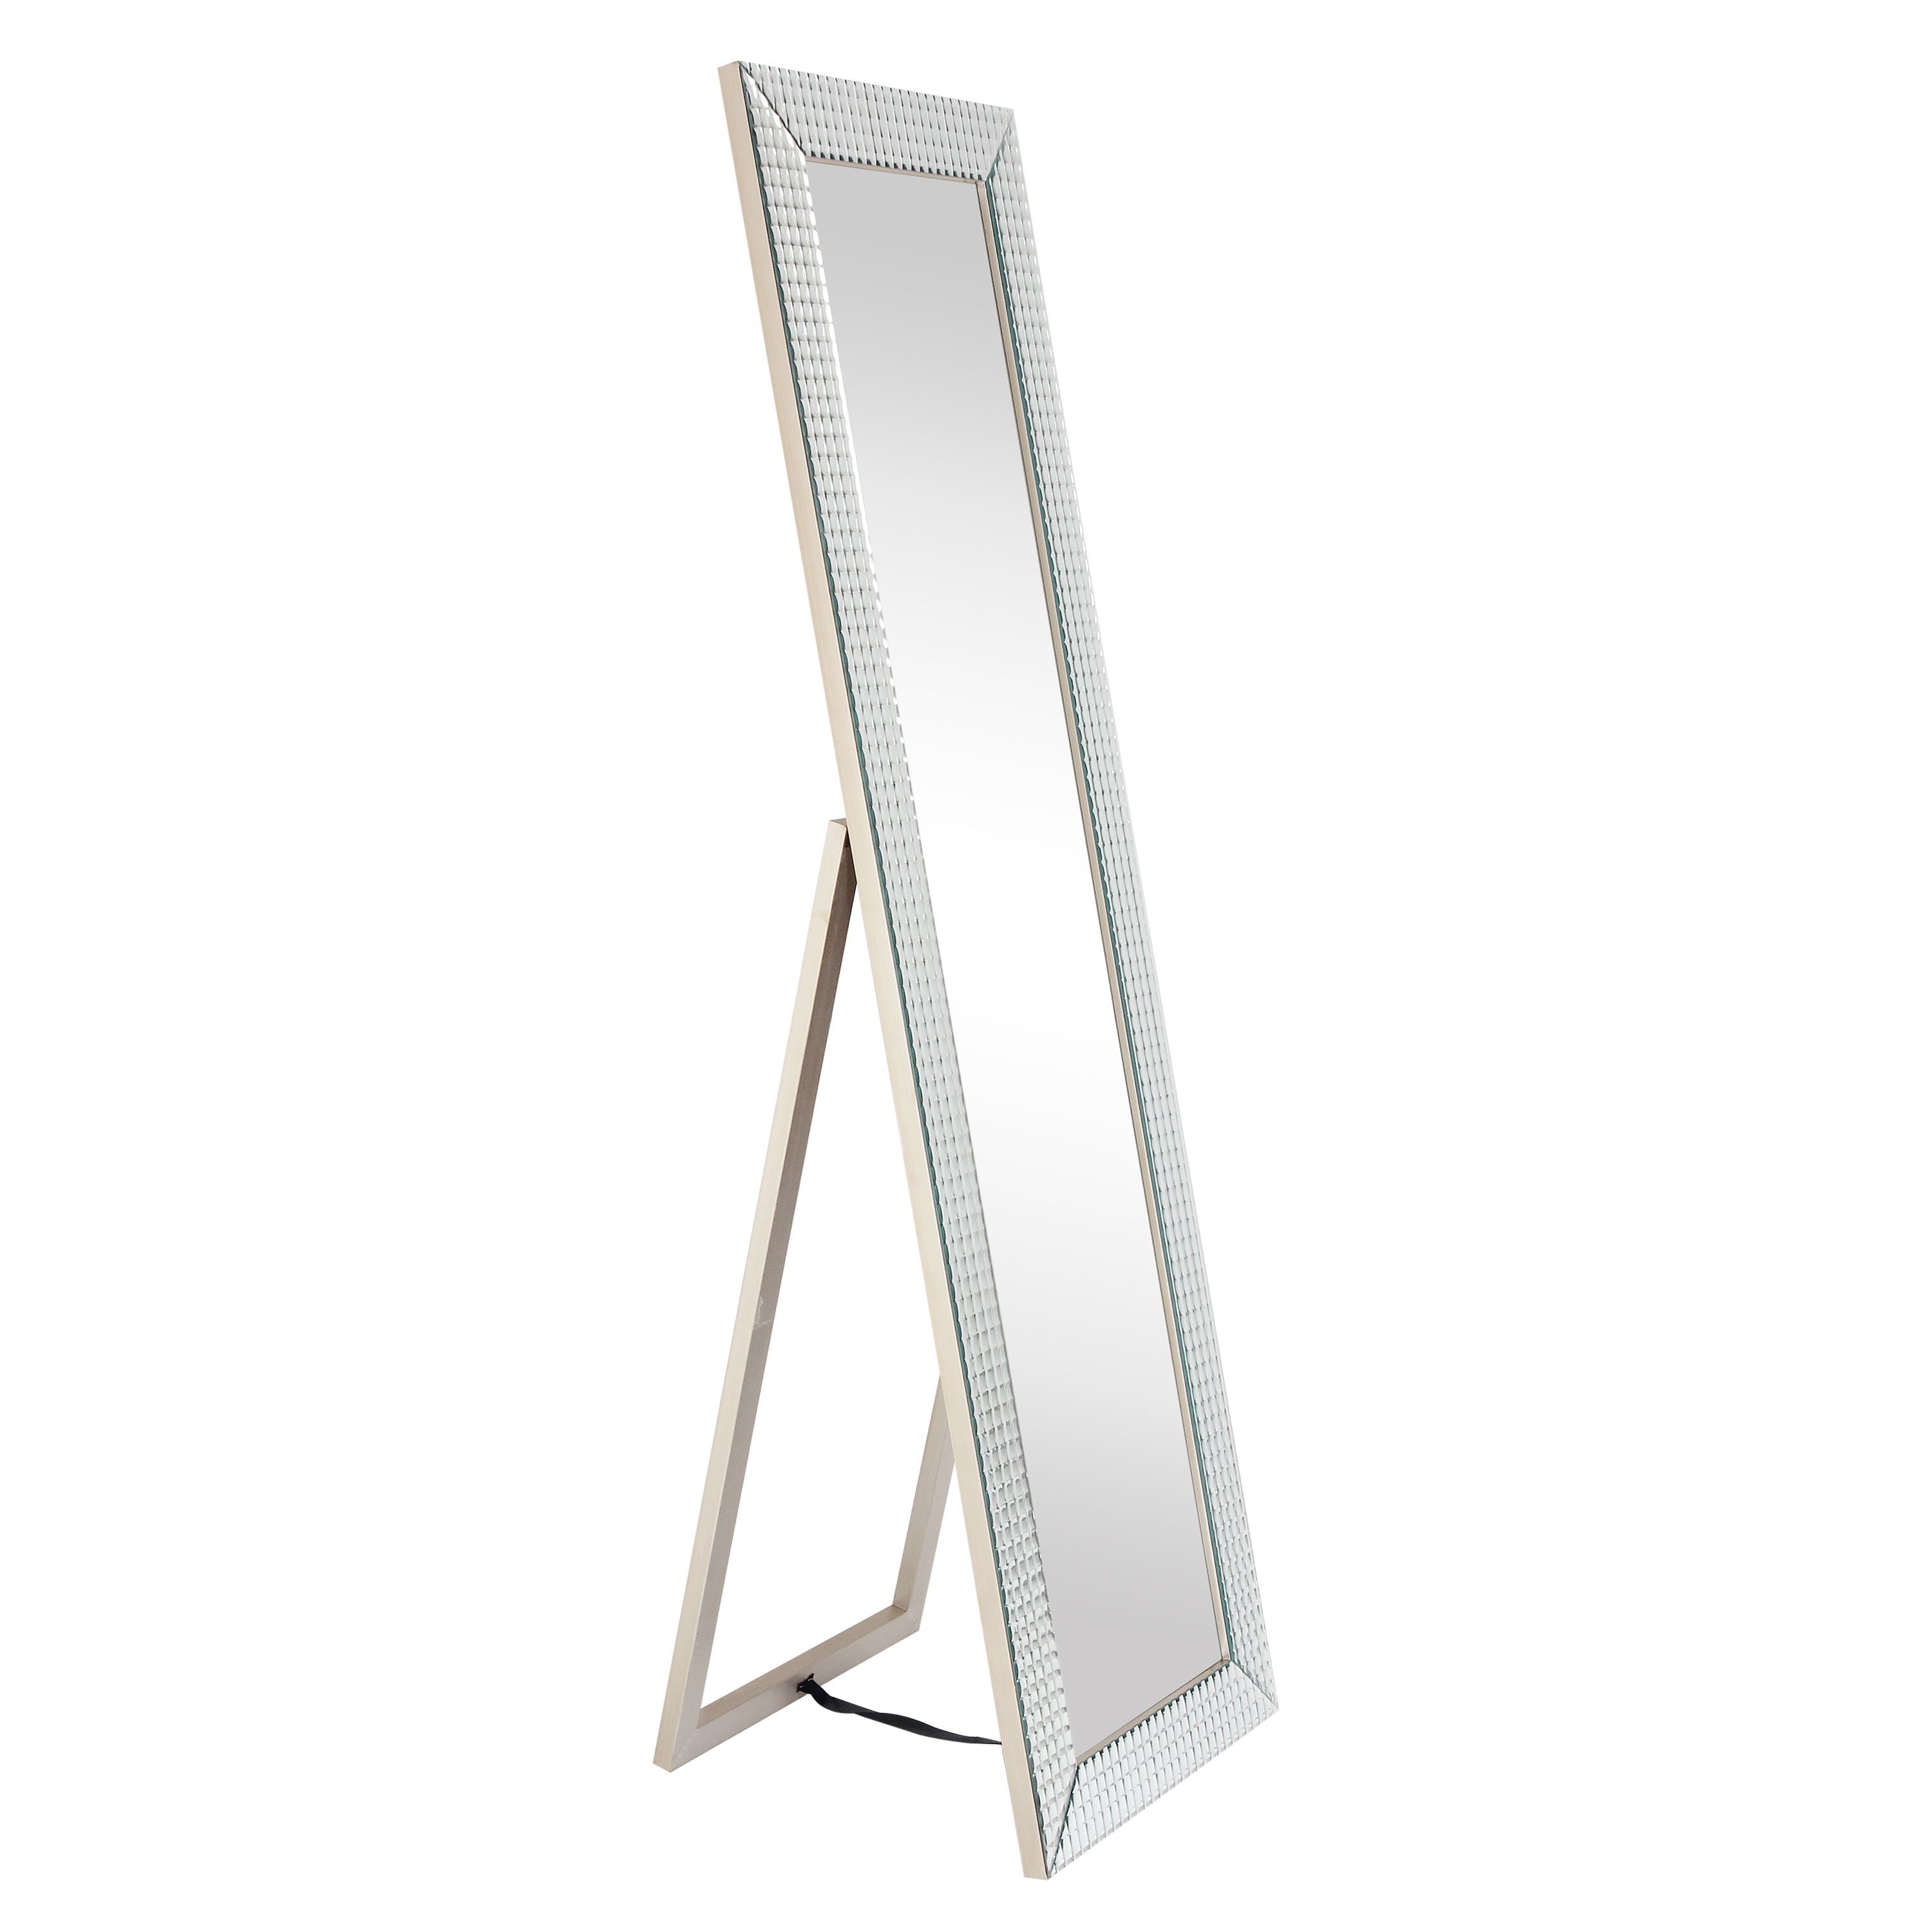 Empire Art Direct MOM-C69100-6418 Bling Beveled Glass Cheval Mirrorsolid Wood Frame Covered with Beveled Prism Mirror Panels - 1 in. Beveled Center Mirror